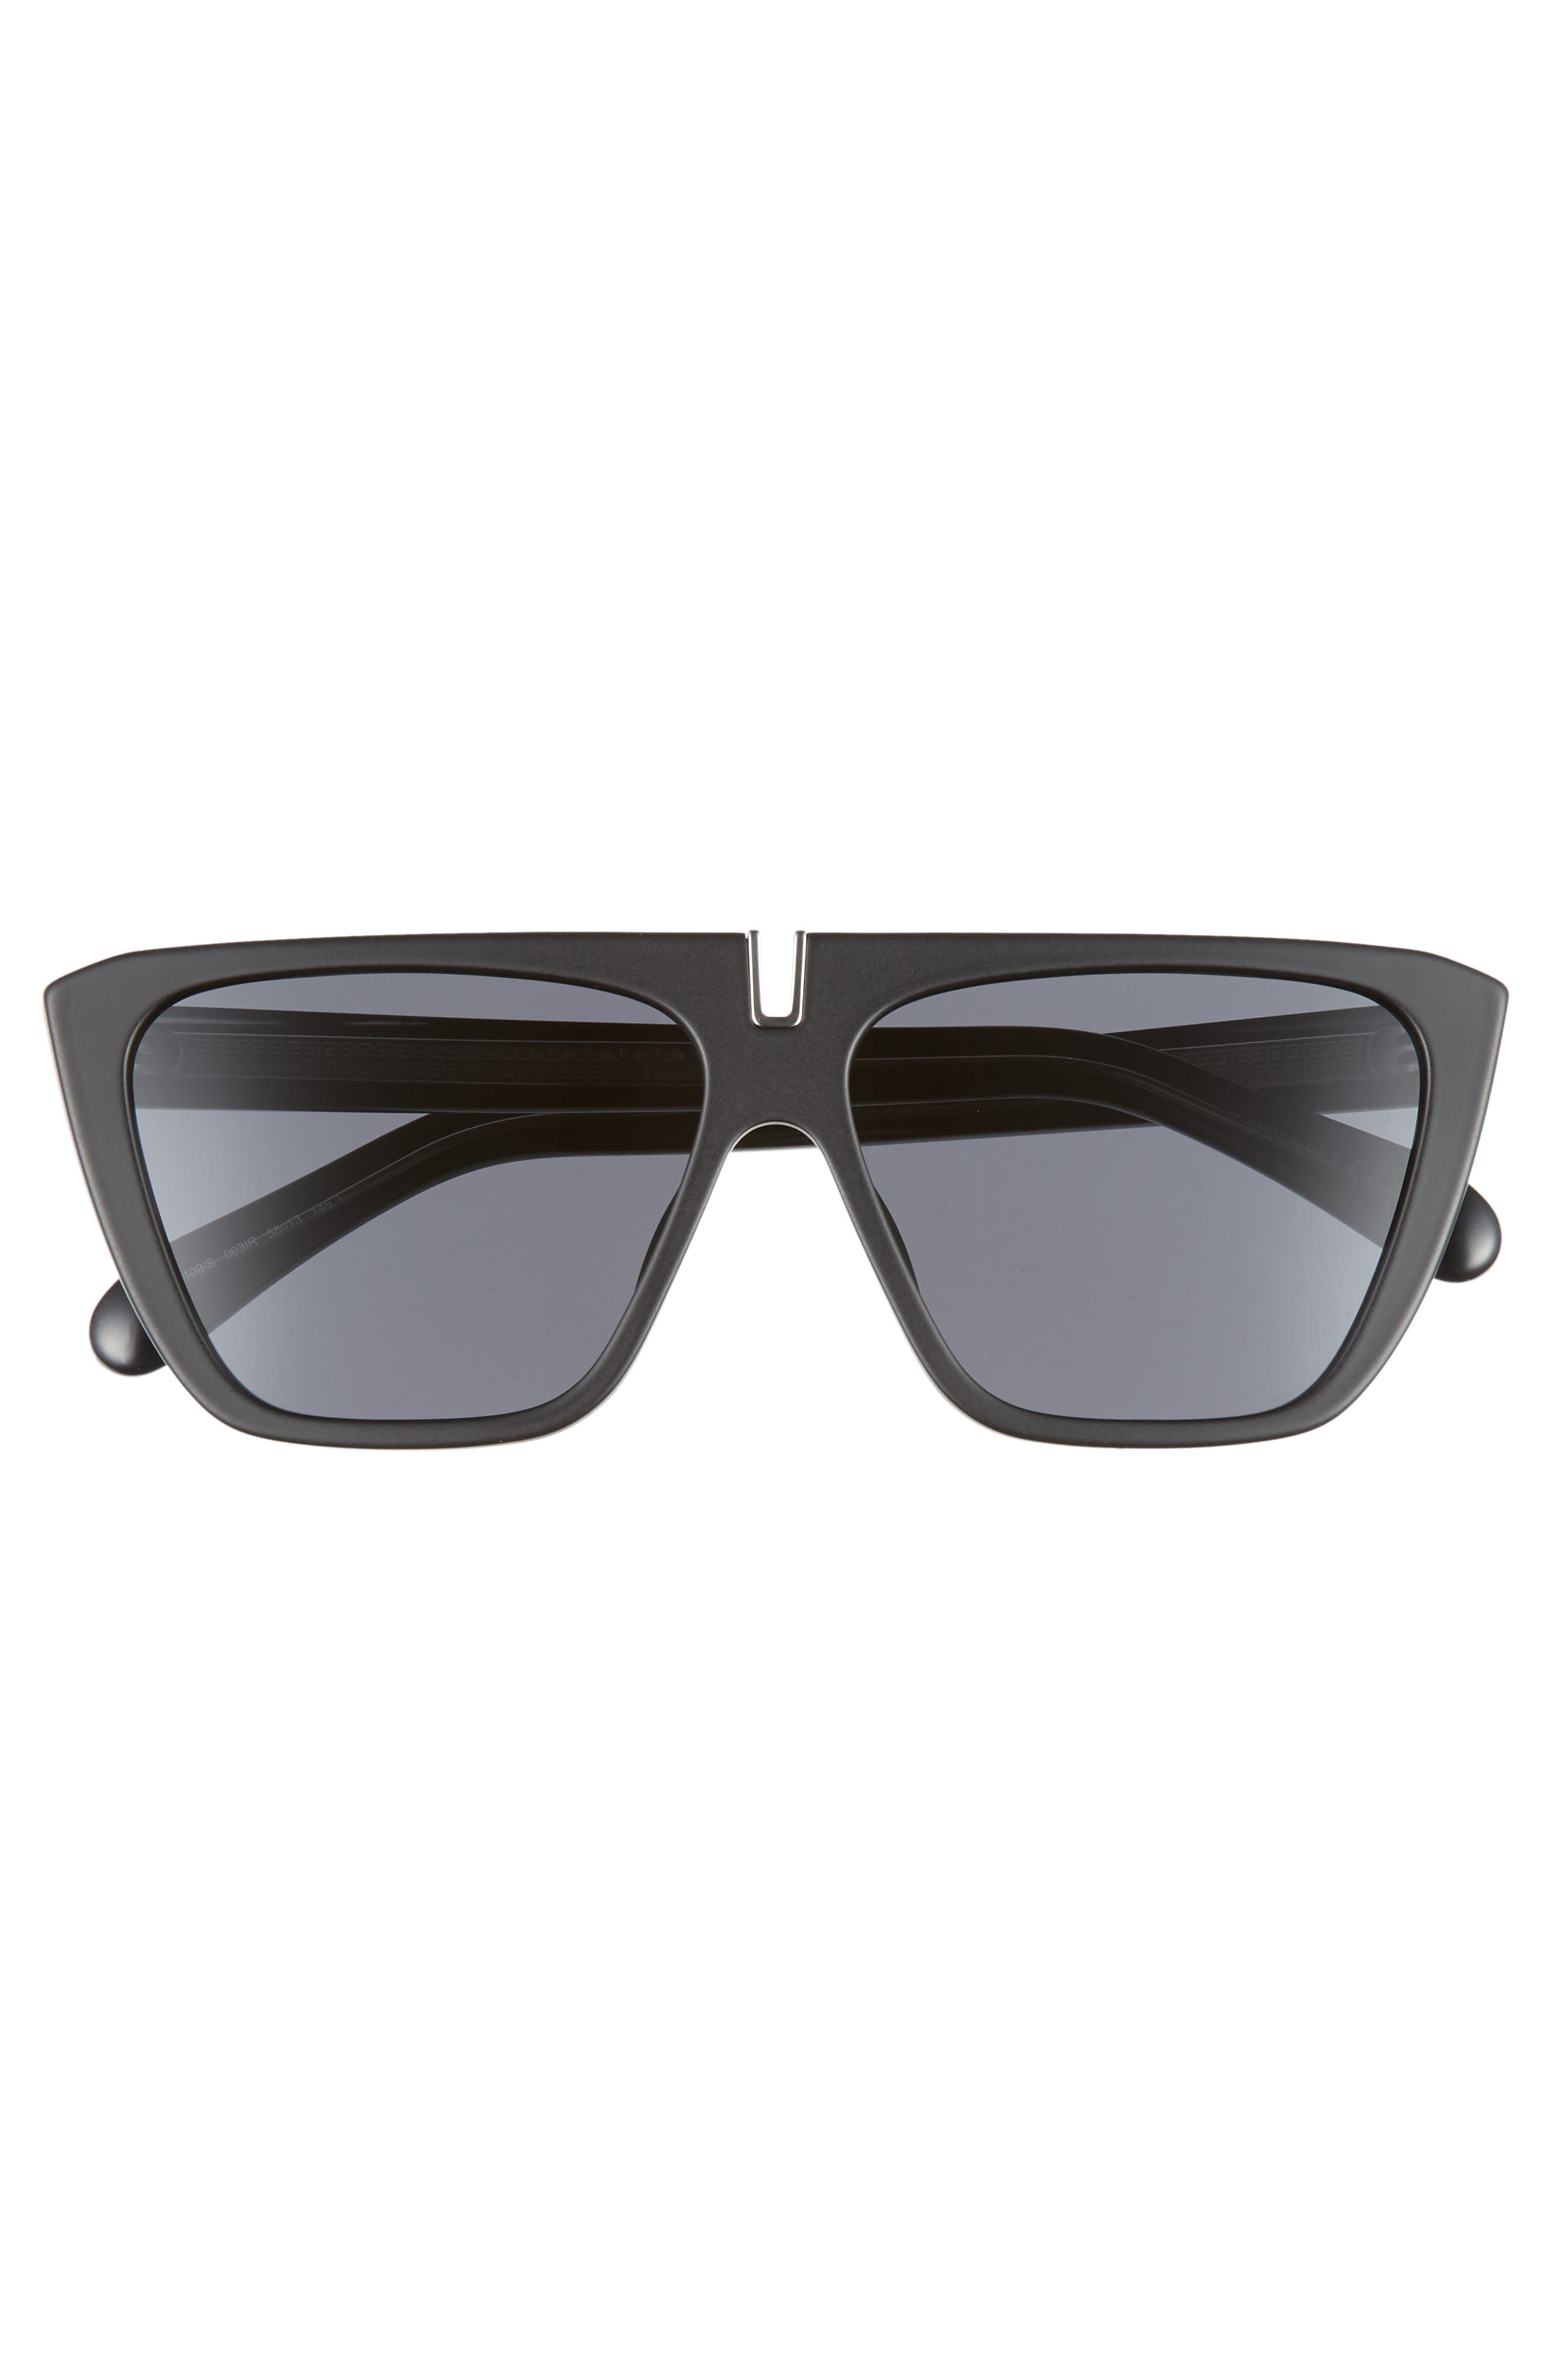 58mm Flat Top Sunglasses,                             Alternate thumbnail 2, color,                             MATTE BLACK